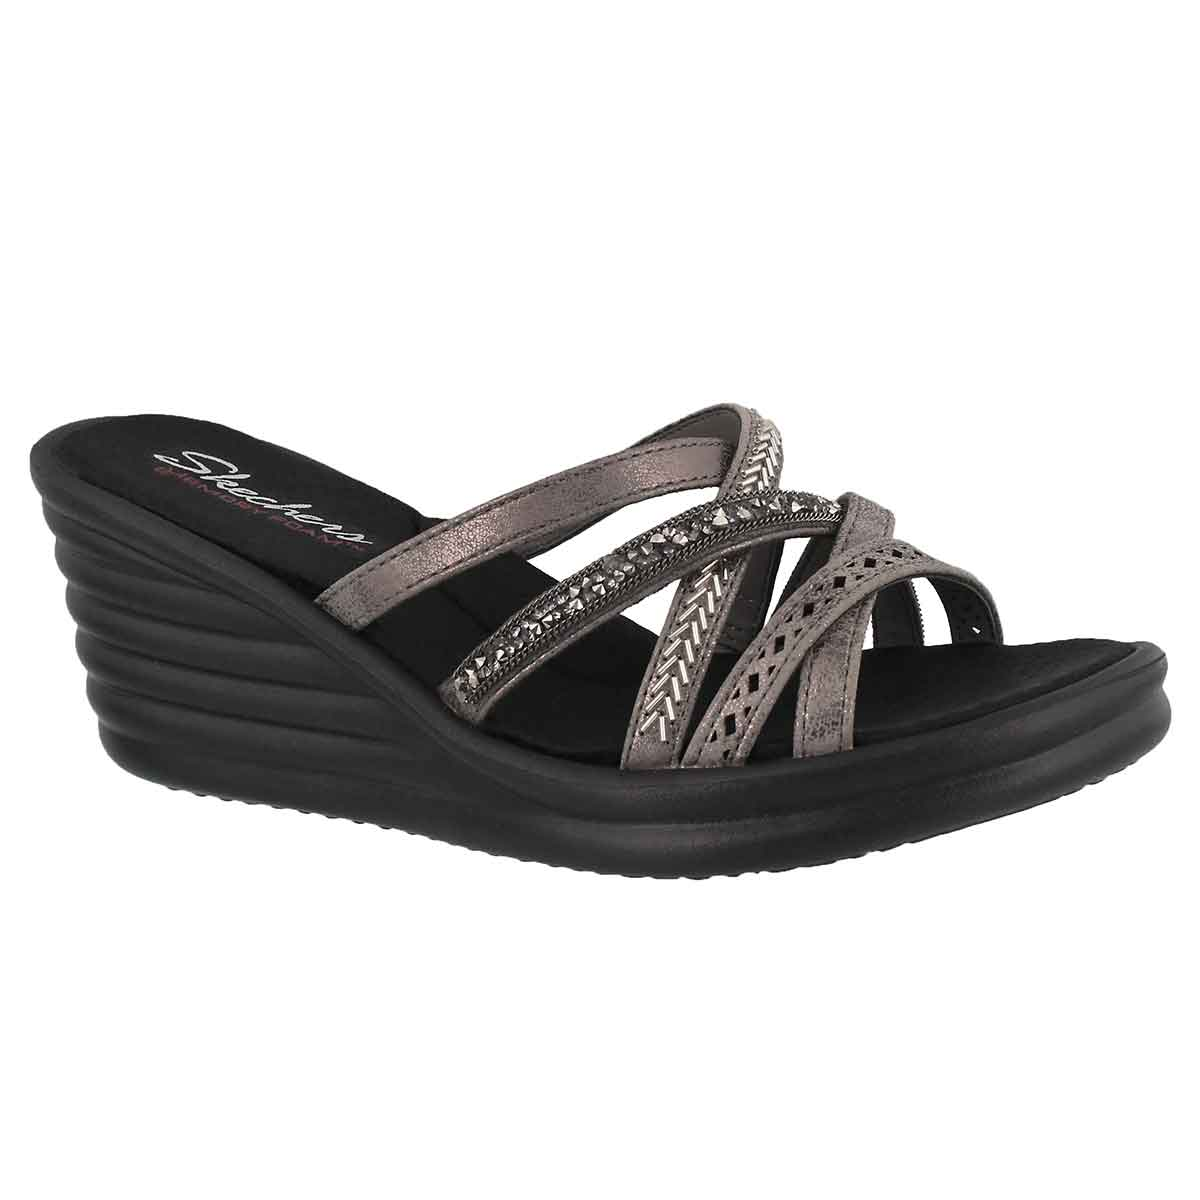 Women's RUMBLERS WAVE pewter wedge sandals